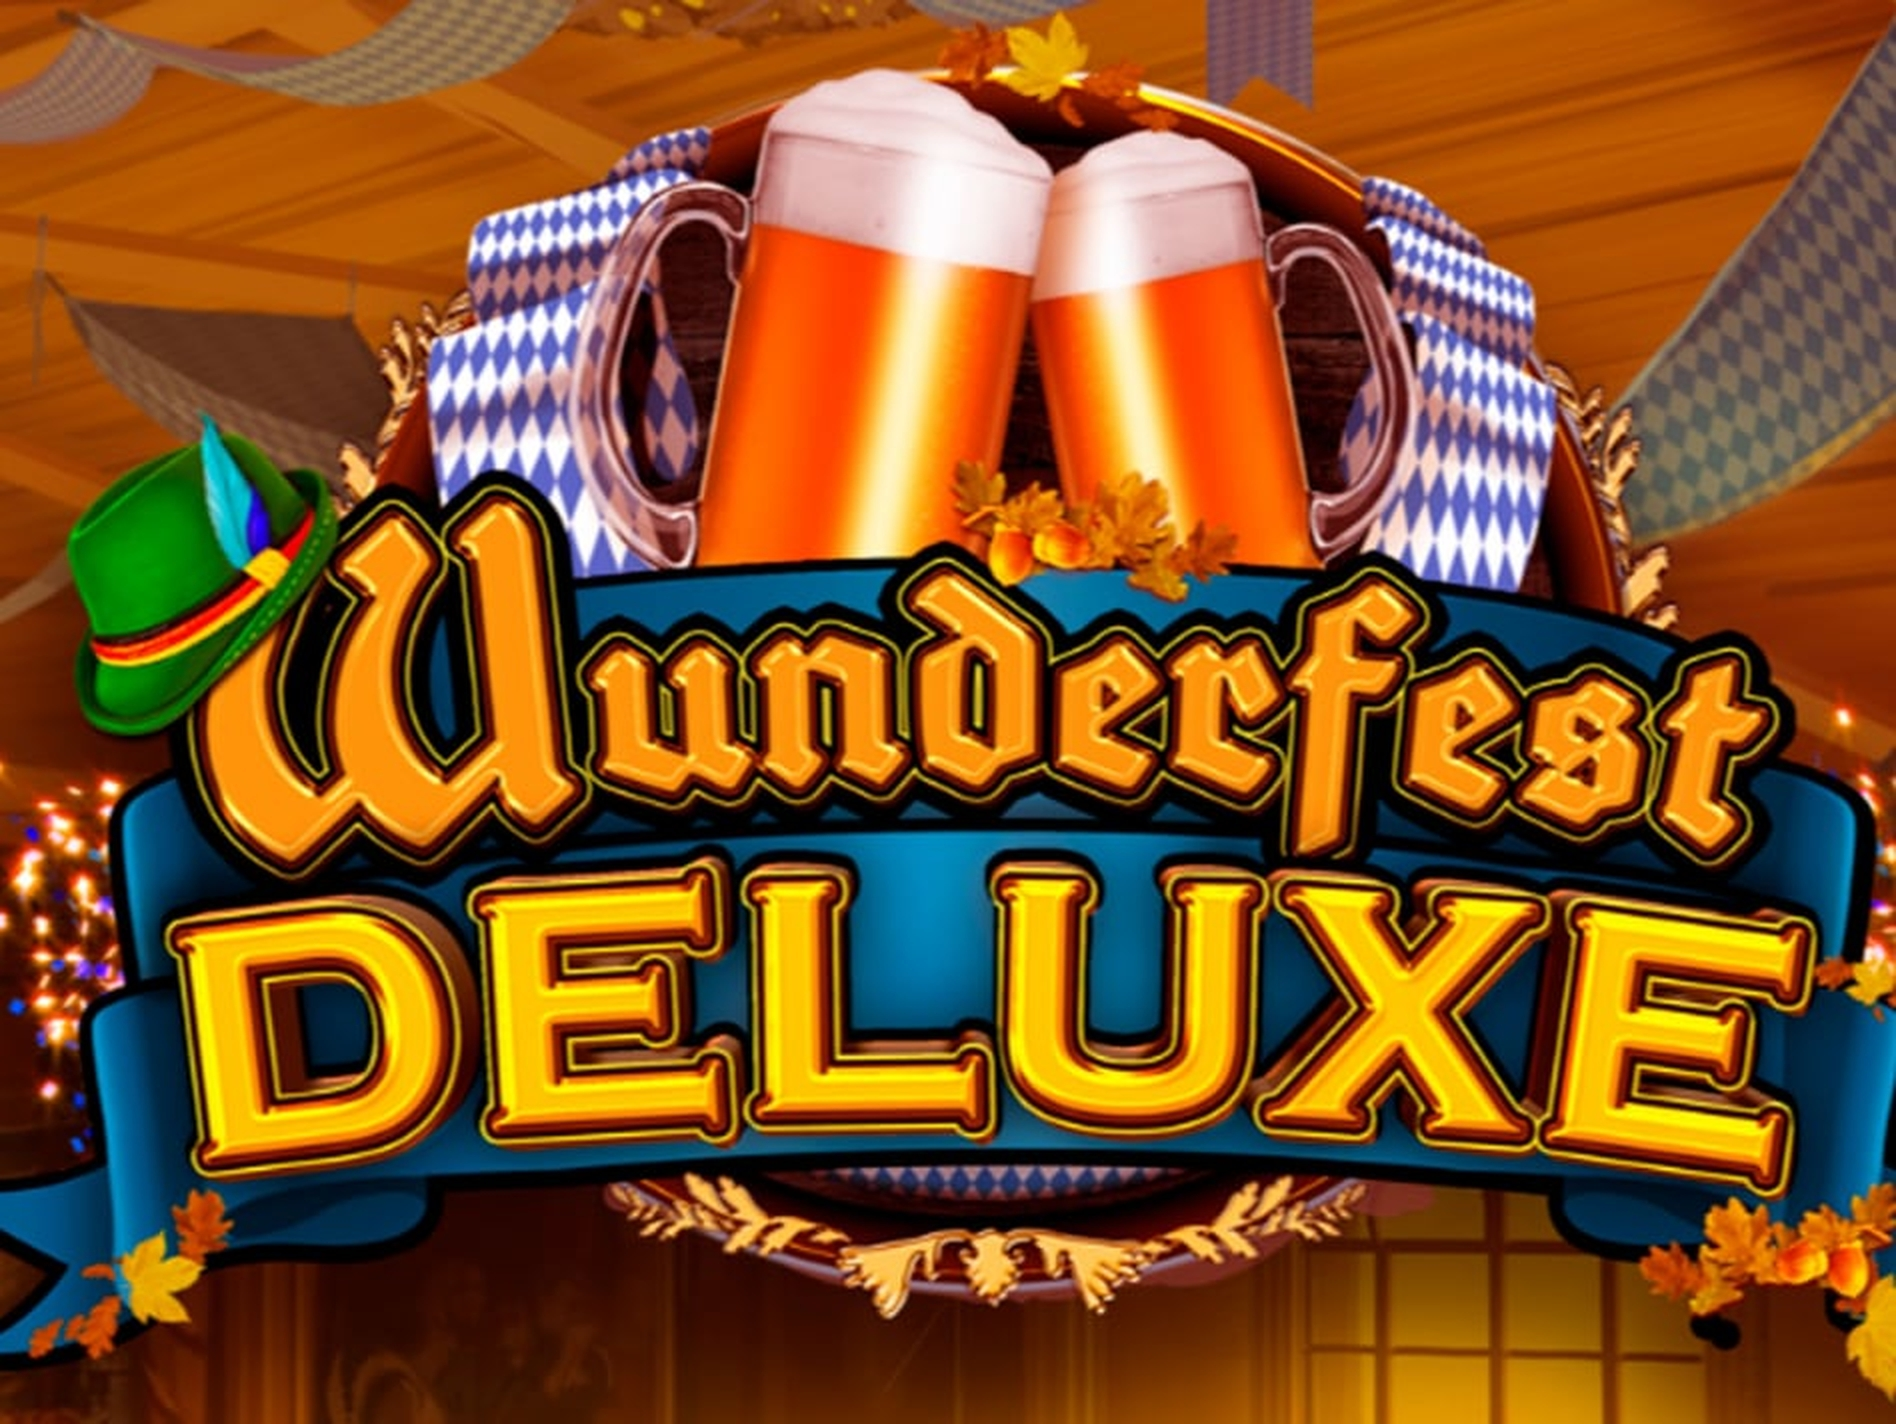 The Wunderfest Deluxe Online Slot Demo Game by Booming Games